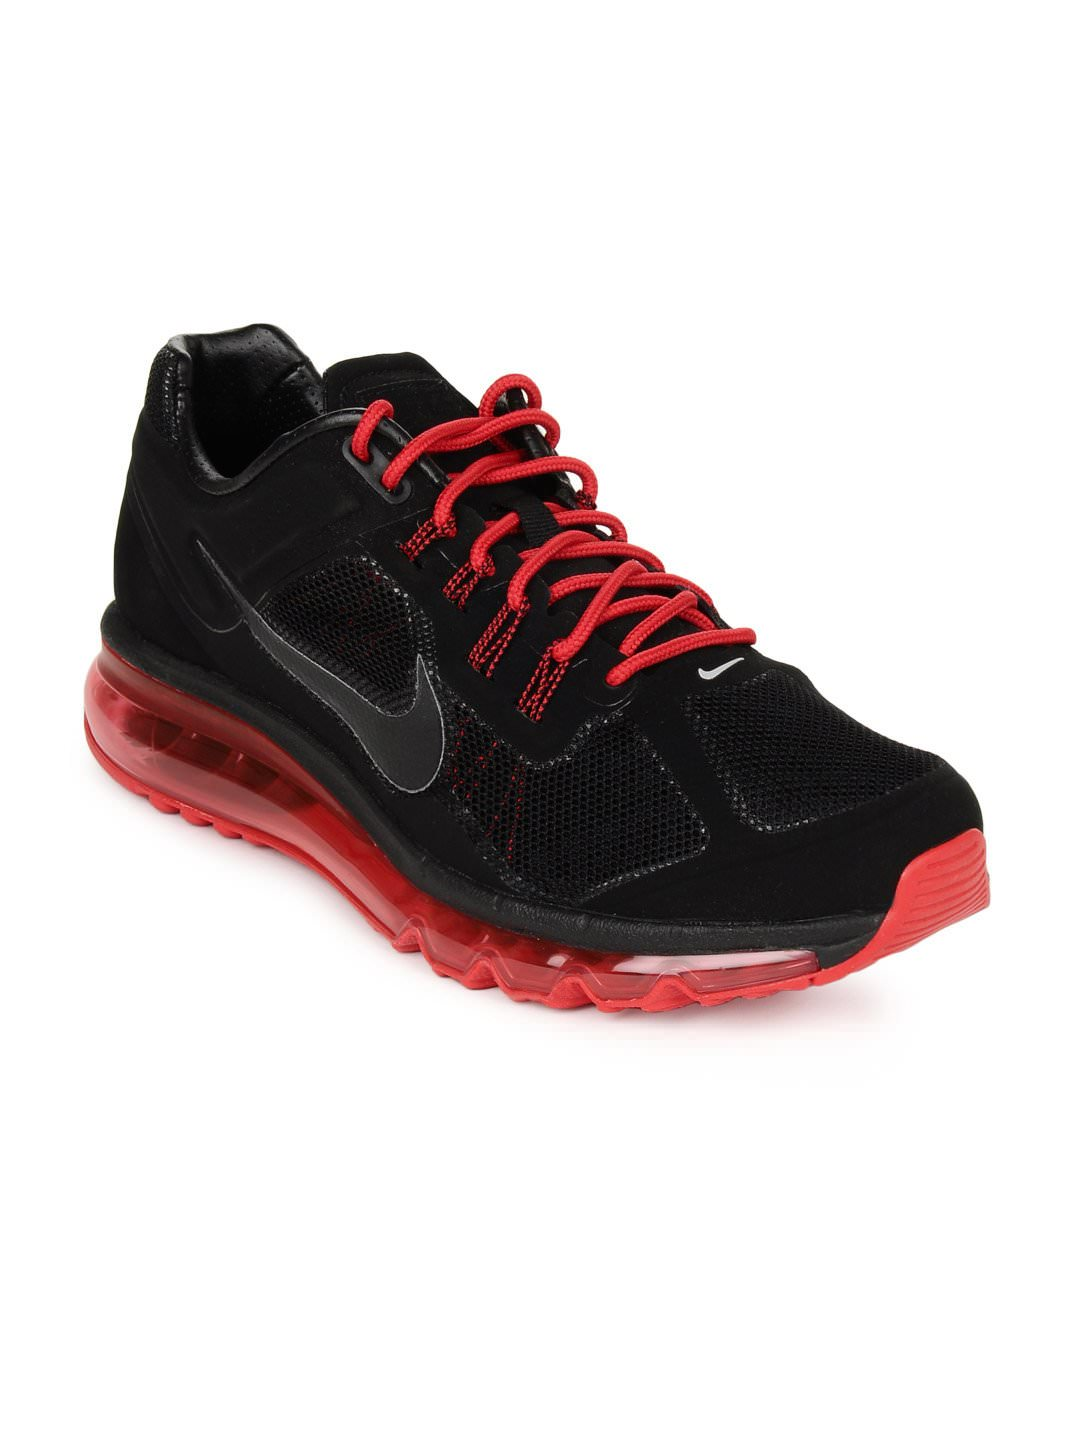 Fashion: New Nike Shoes Boys Only In 2013